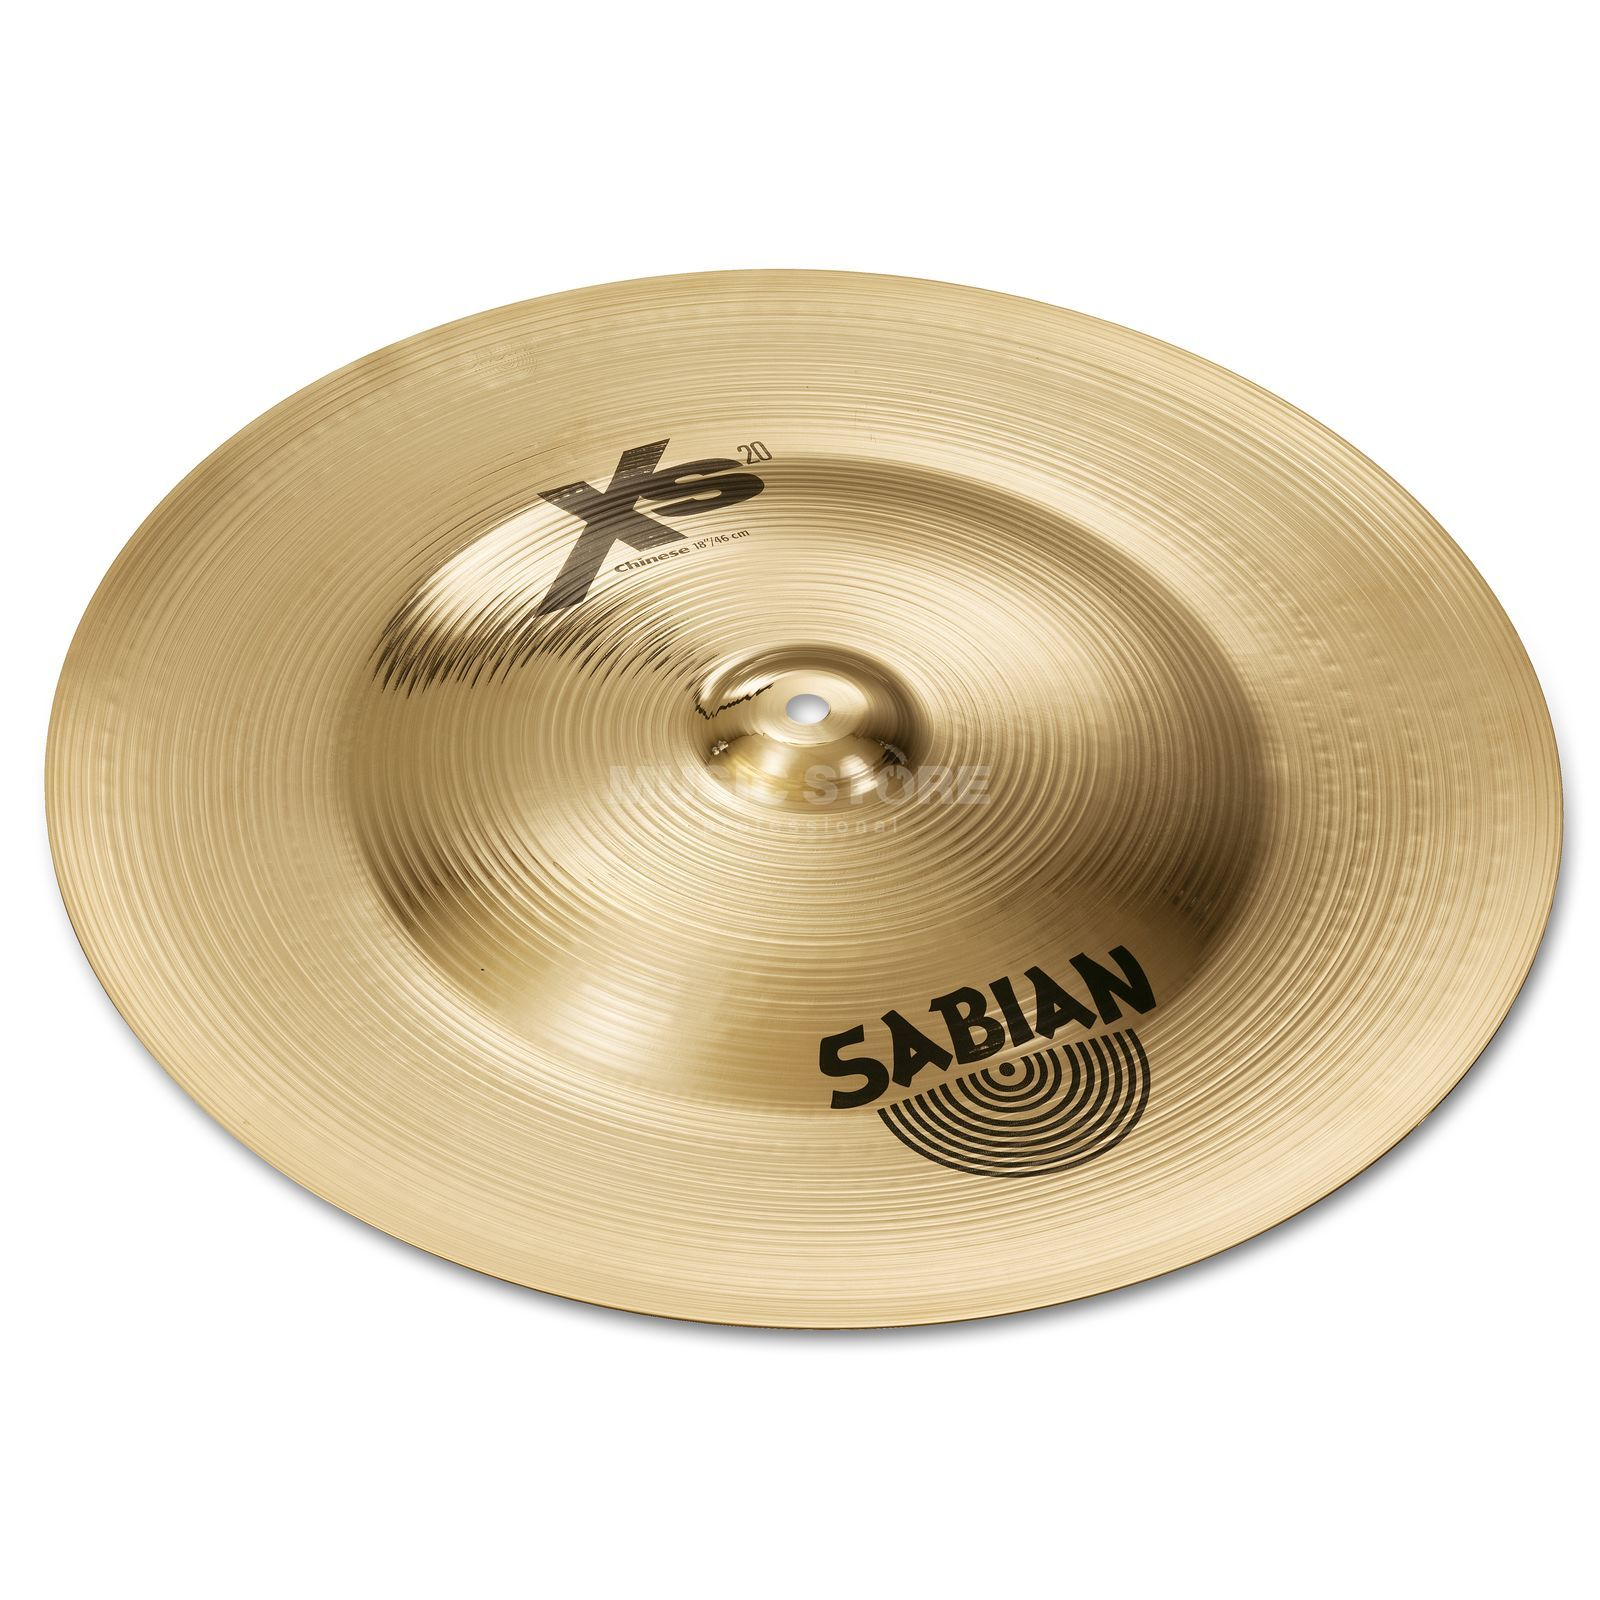 "Sabian XS20 China 18"", Brilliant Finish Produktbillede"